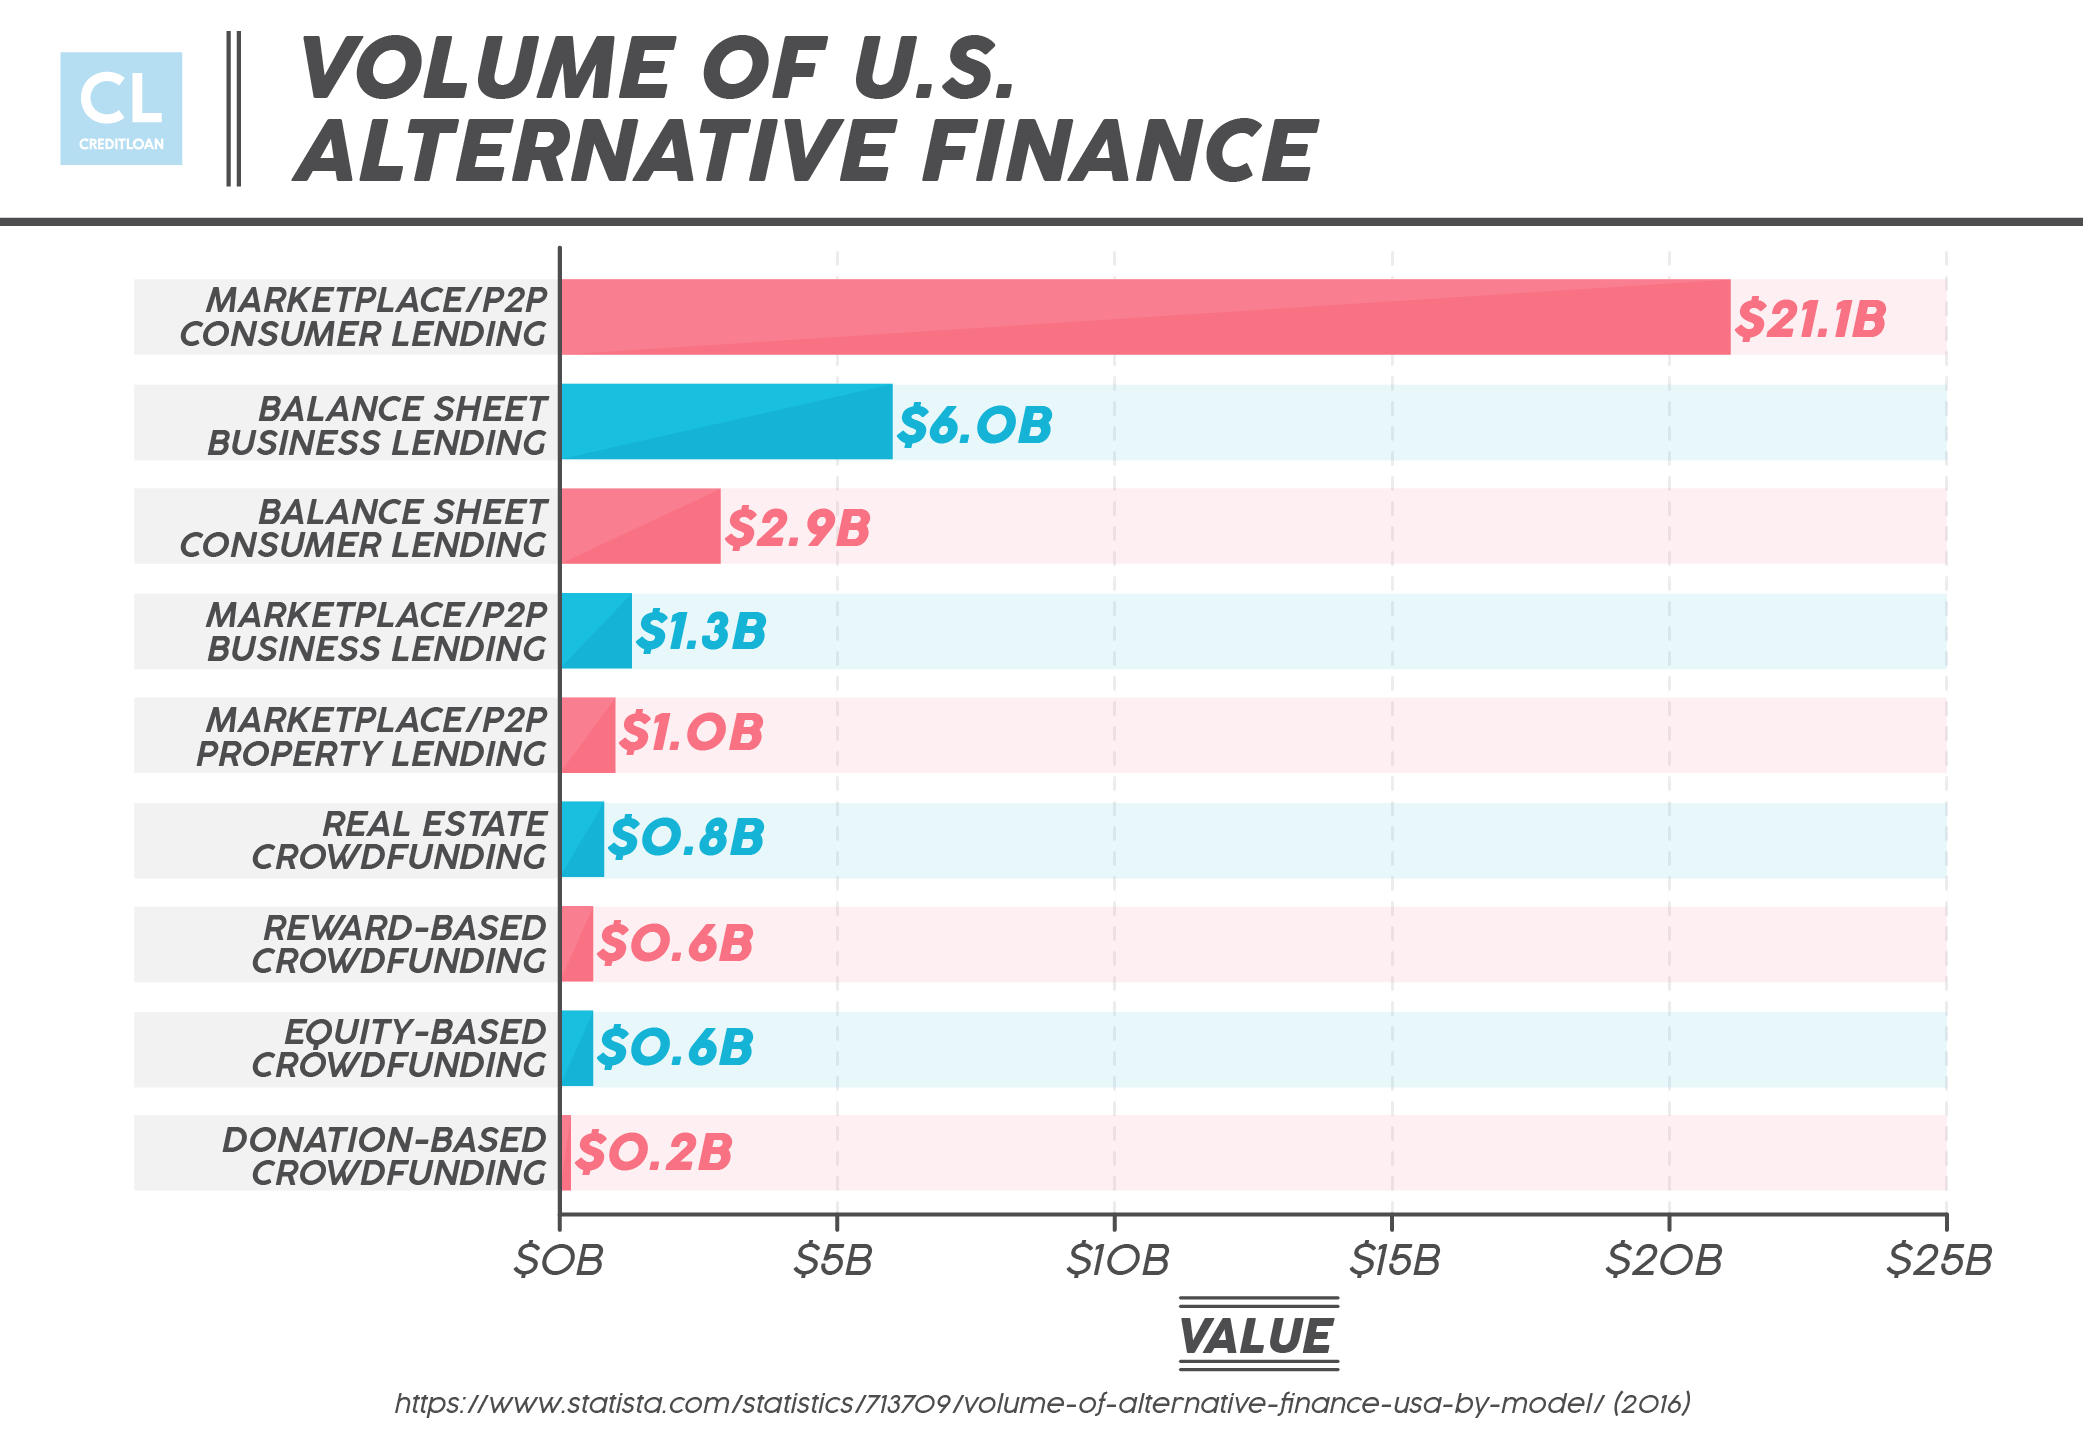 Volume of U.S. Alternative Finance